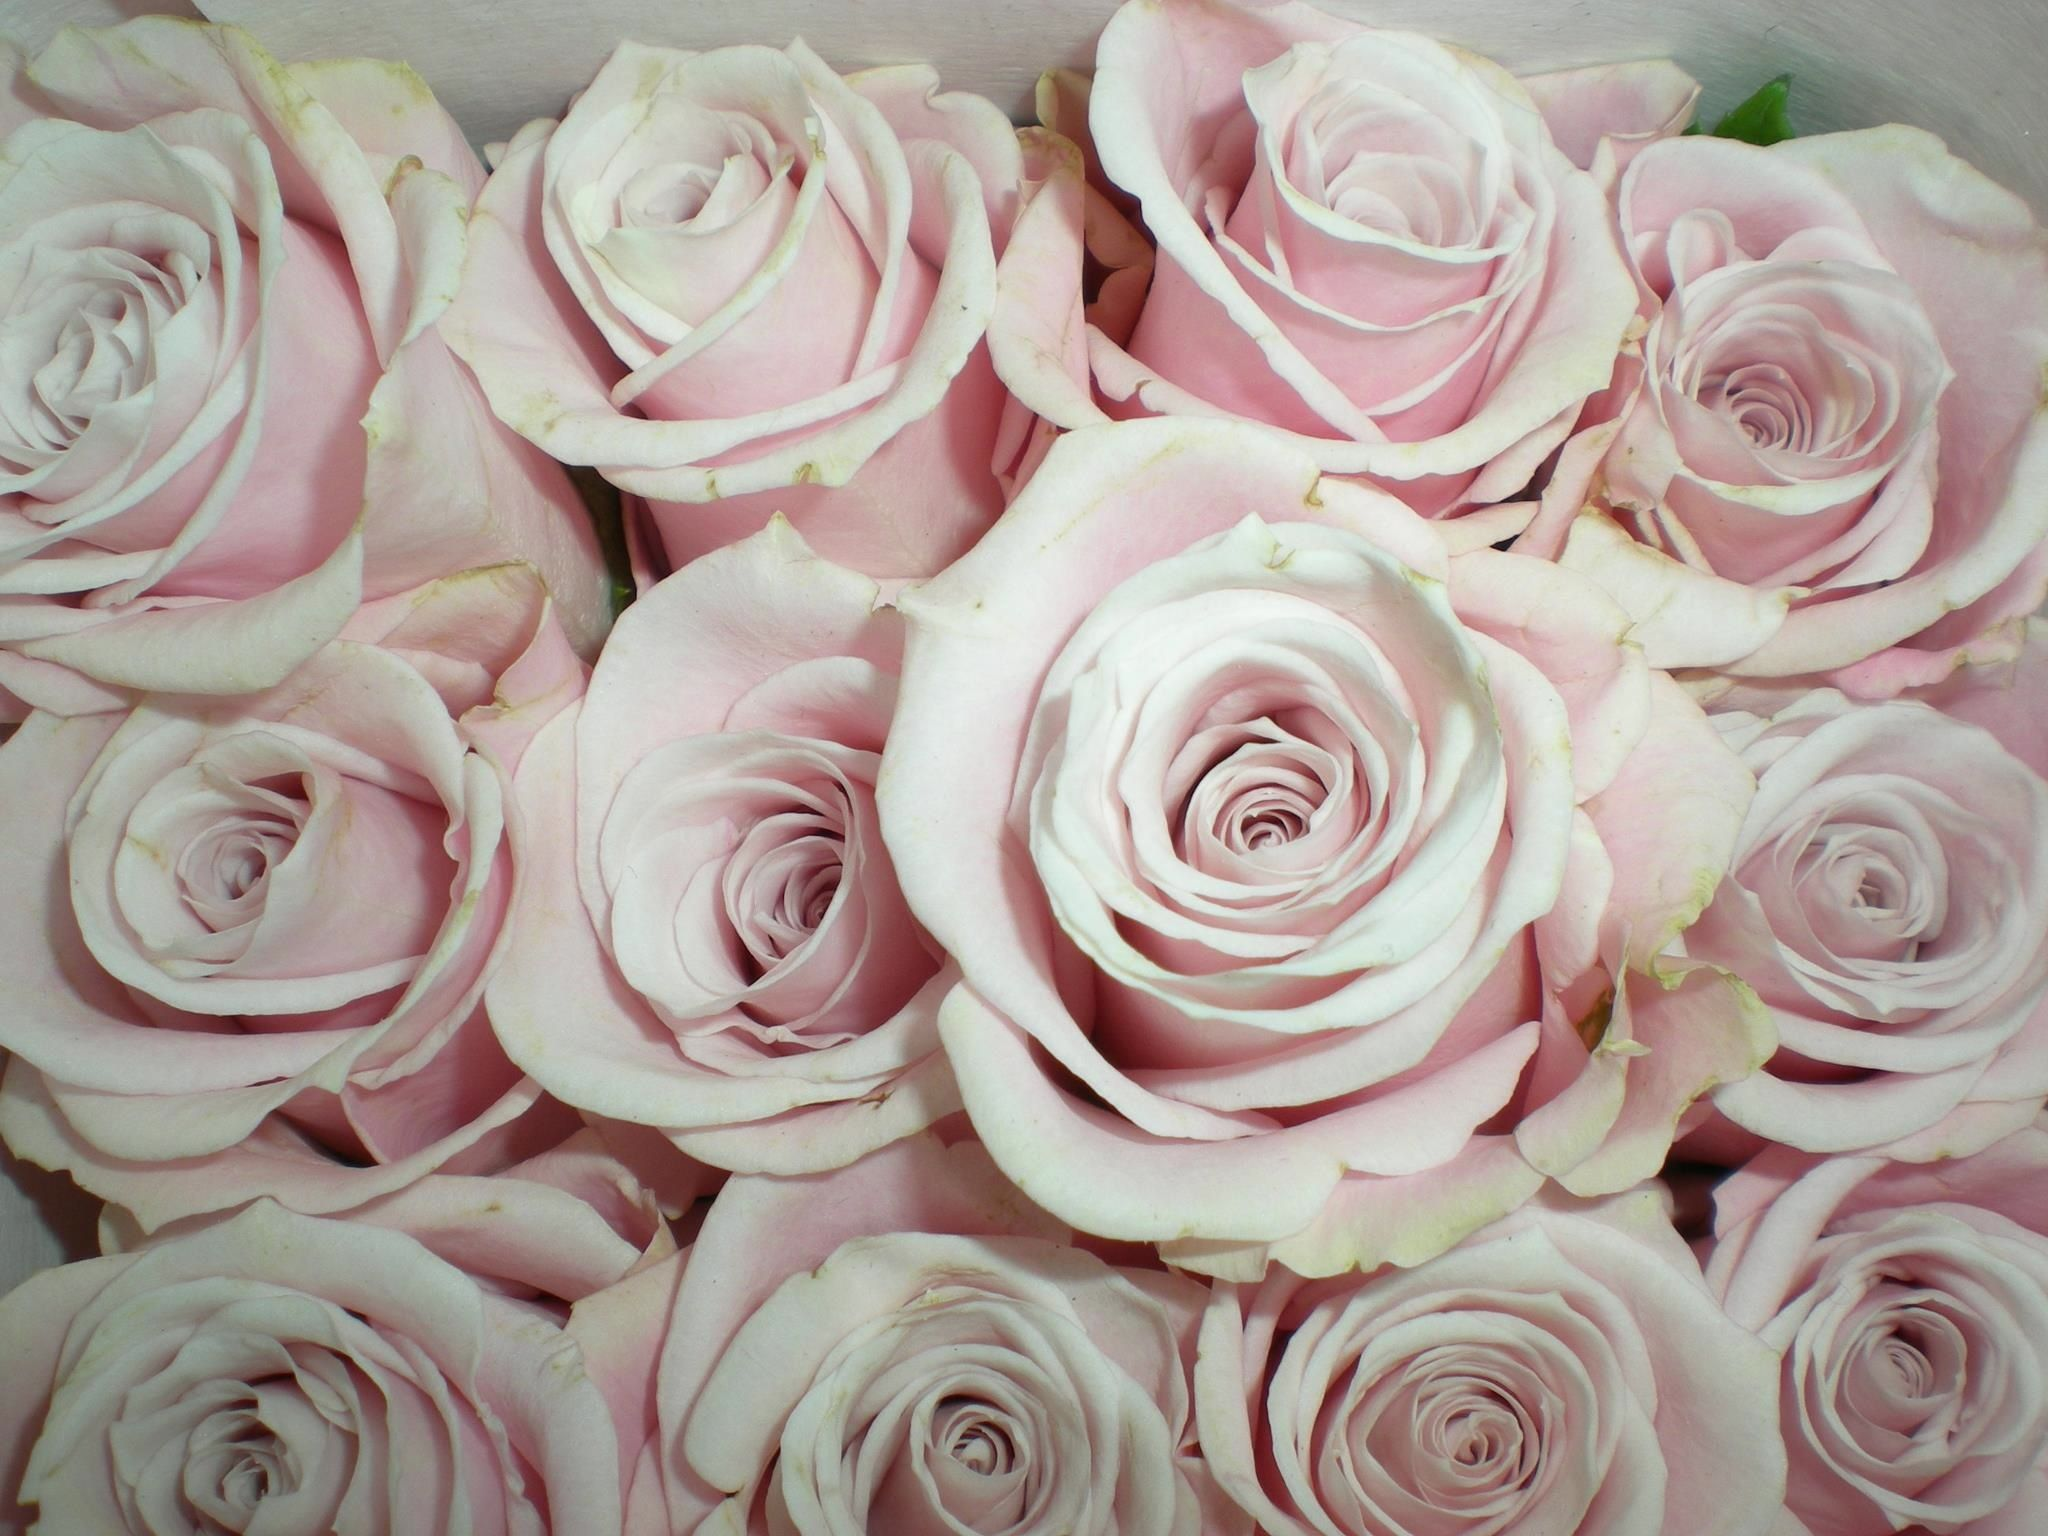 Home bulk roses peach roses - Sweet Escimo Roses Blush Pink For Bouquets